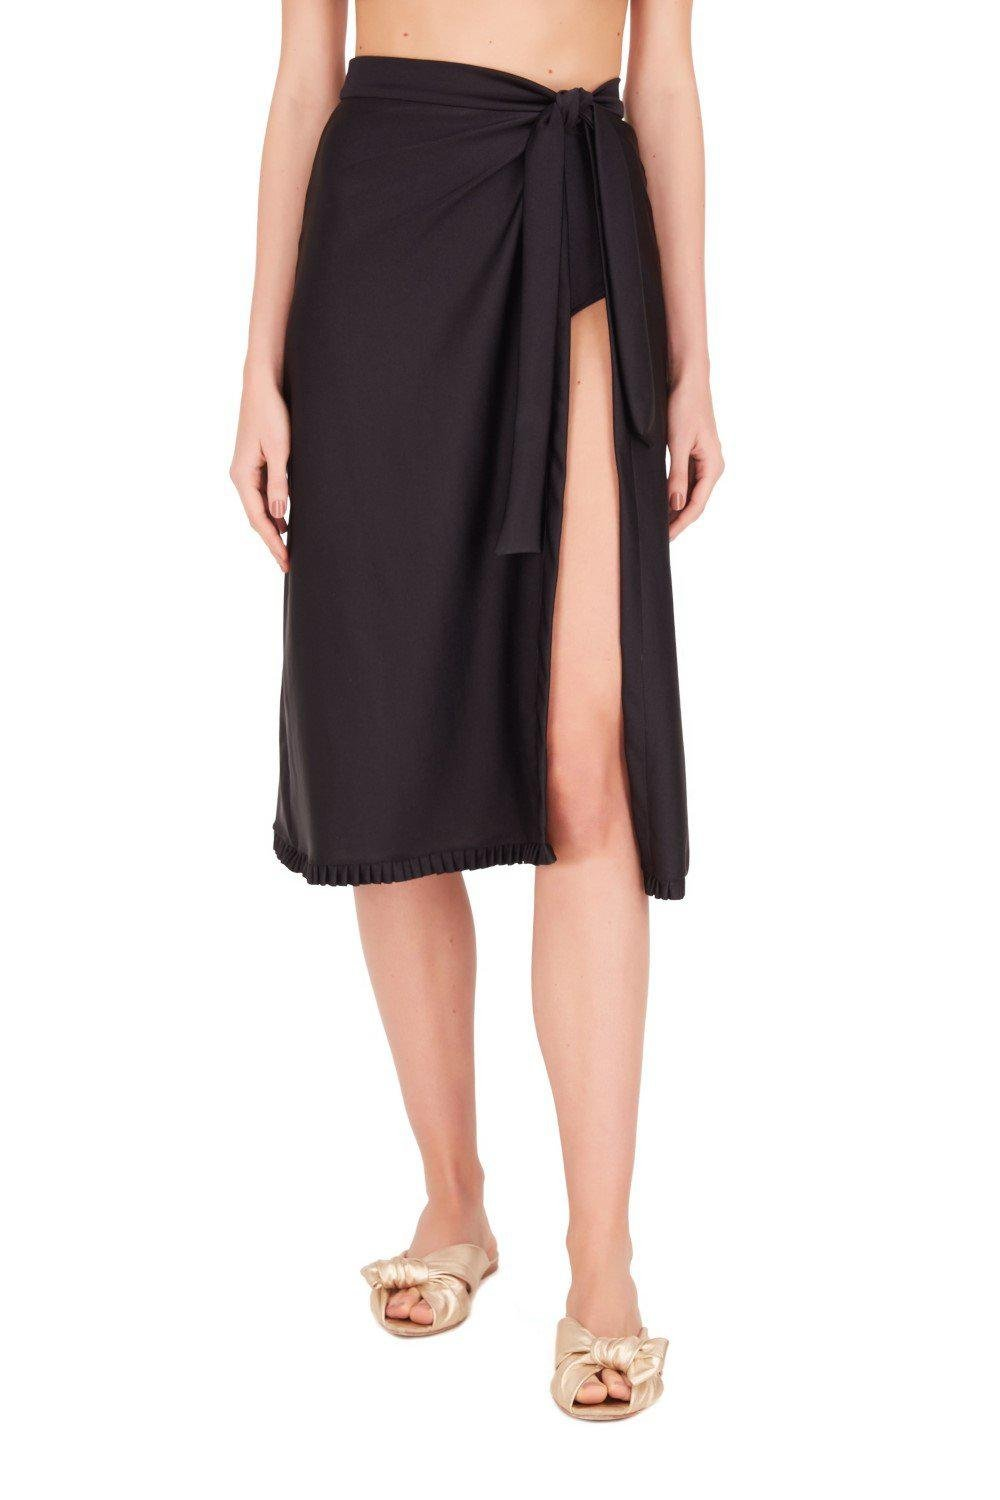 Fruits Exotiques Solid Pareo Skirt with Frills 1